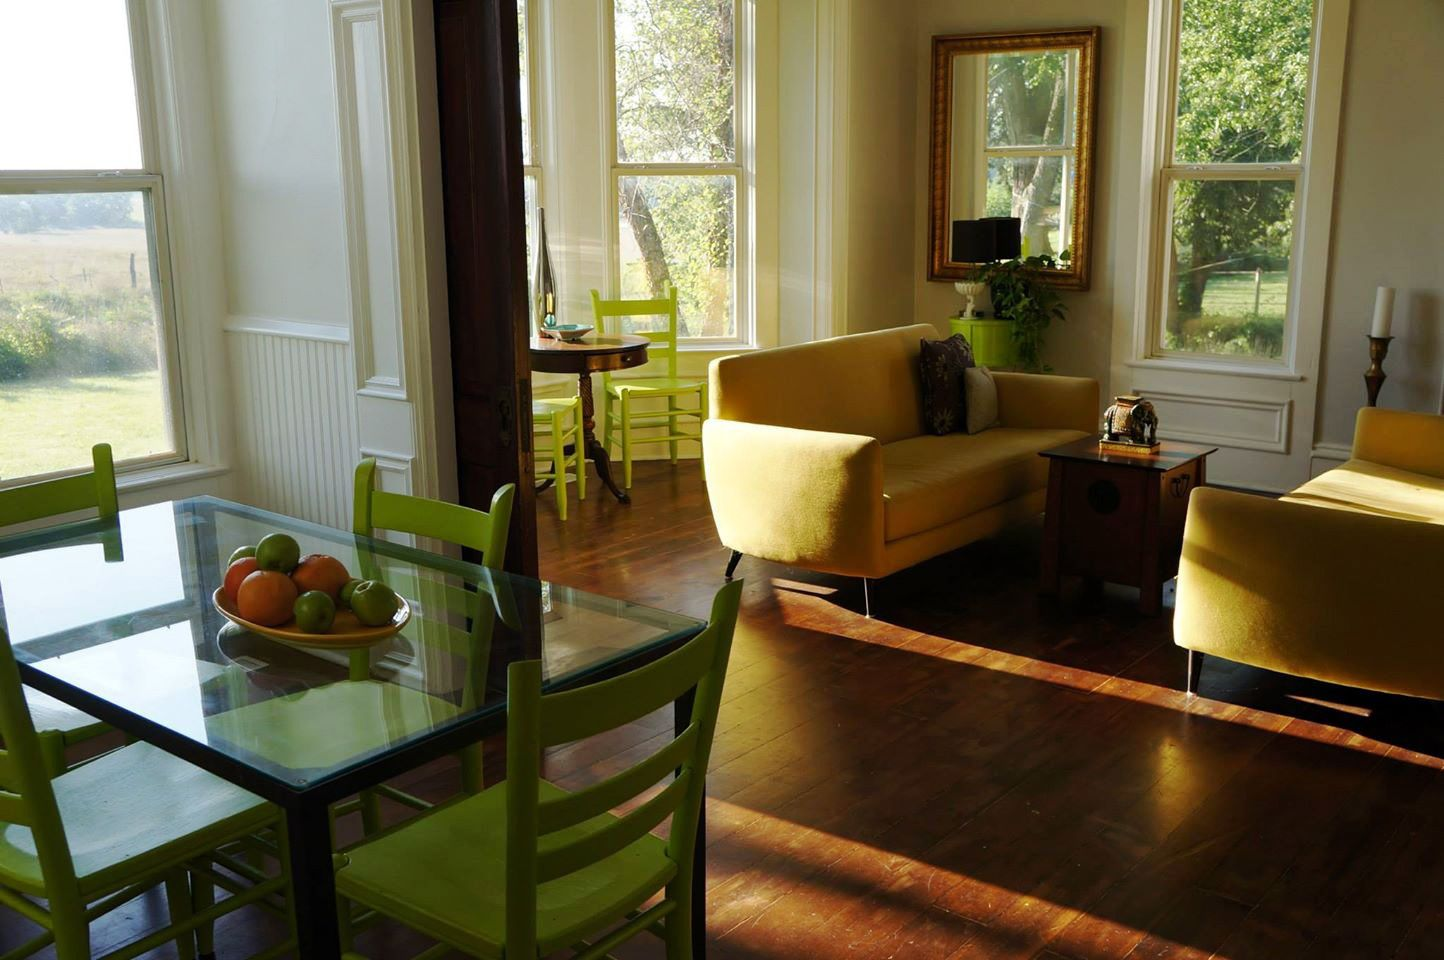 The farm fresh bed & breakfast located in just south of